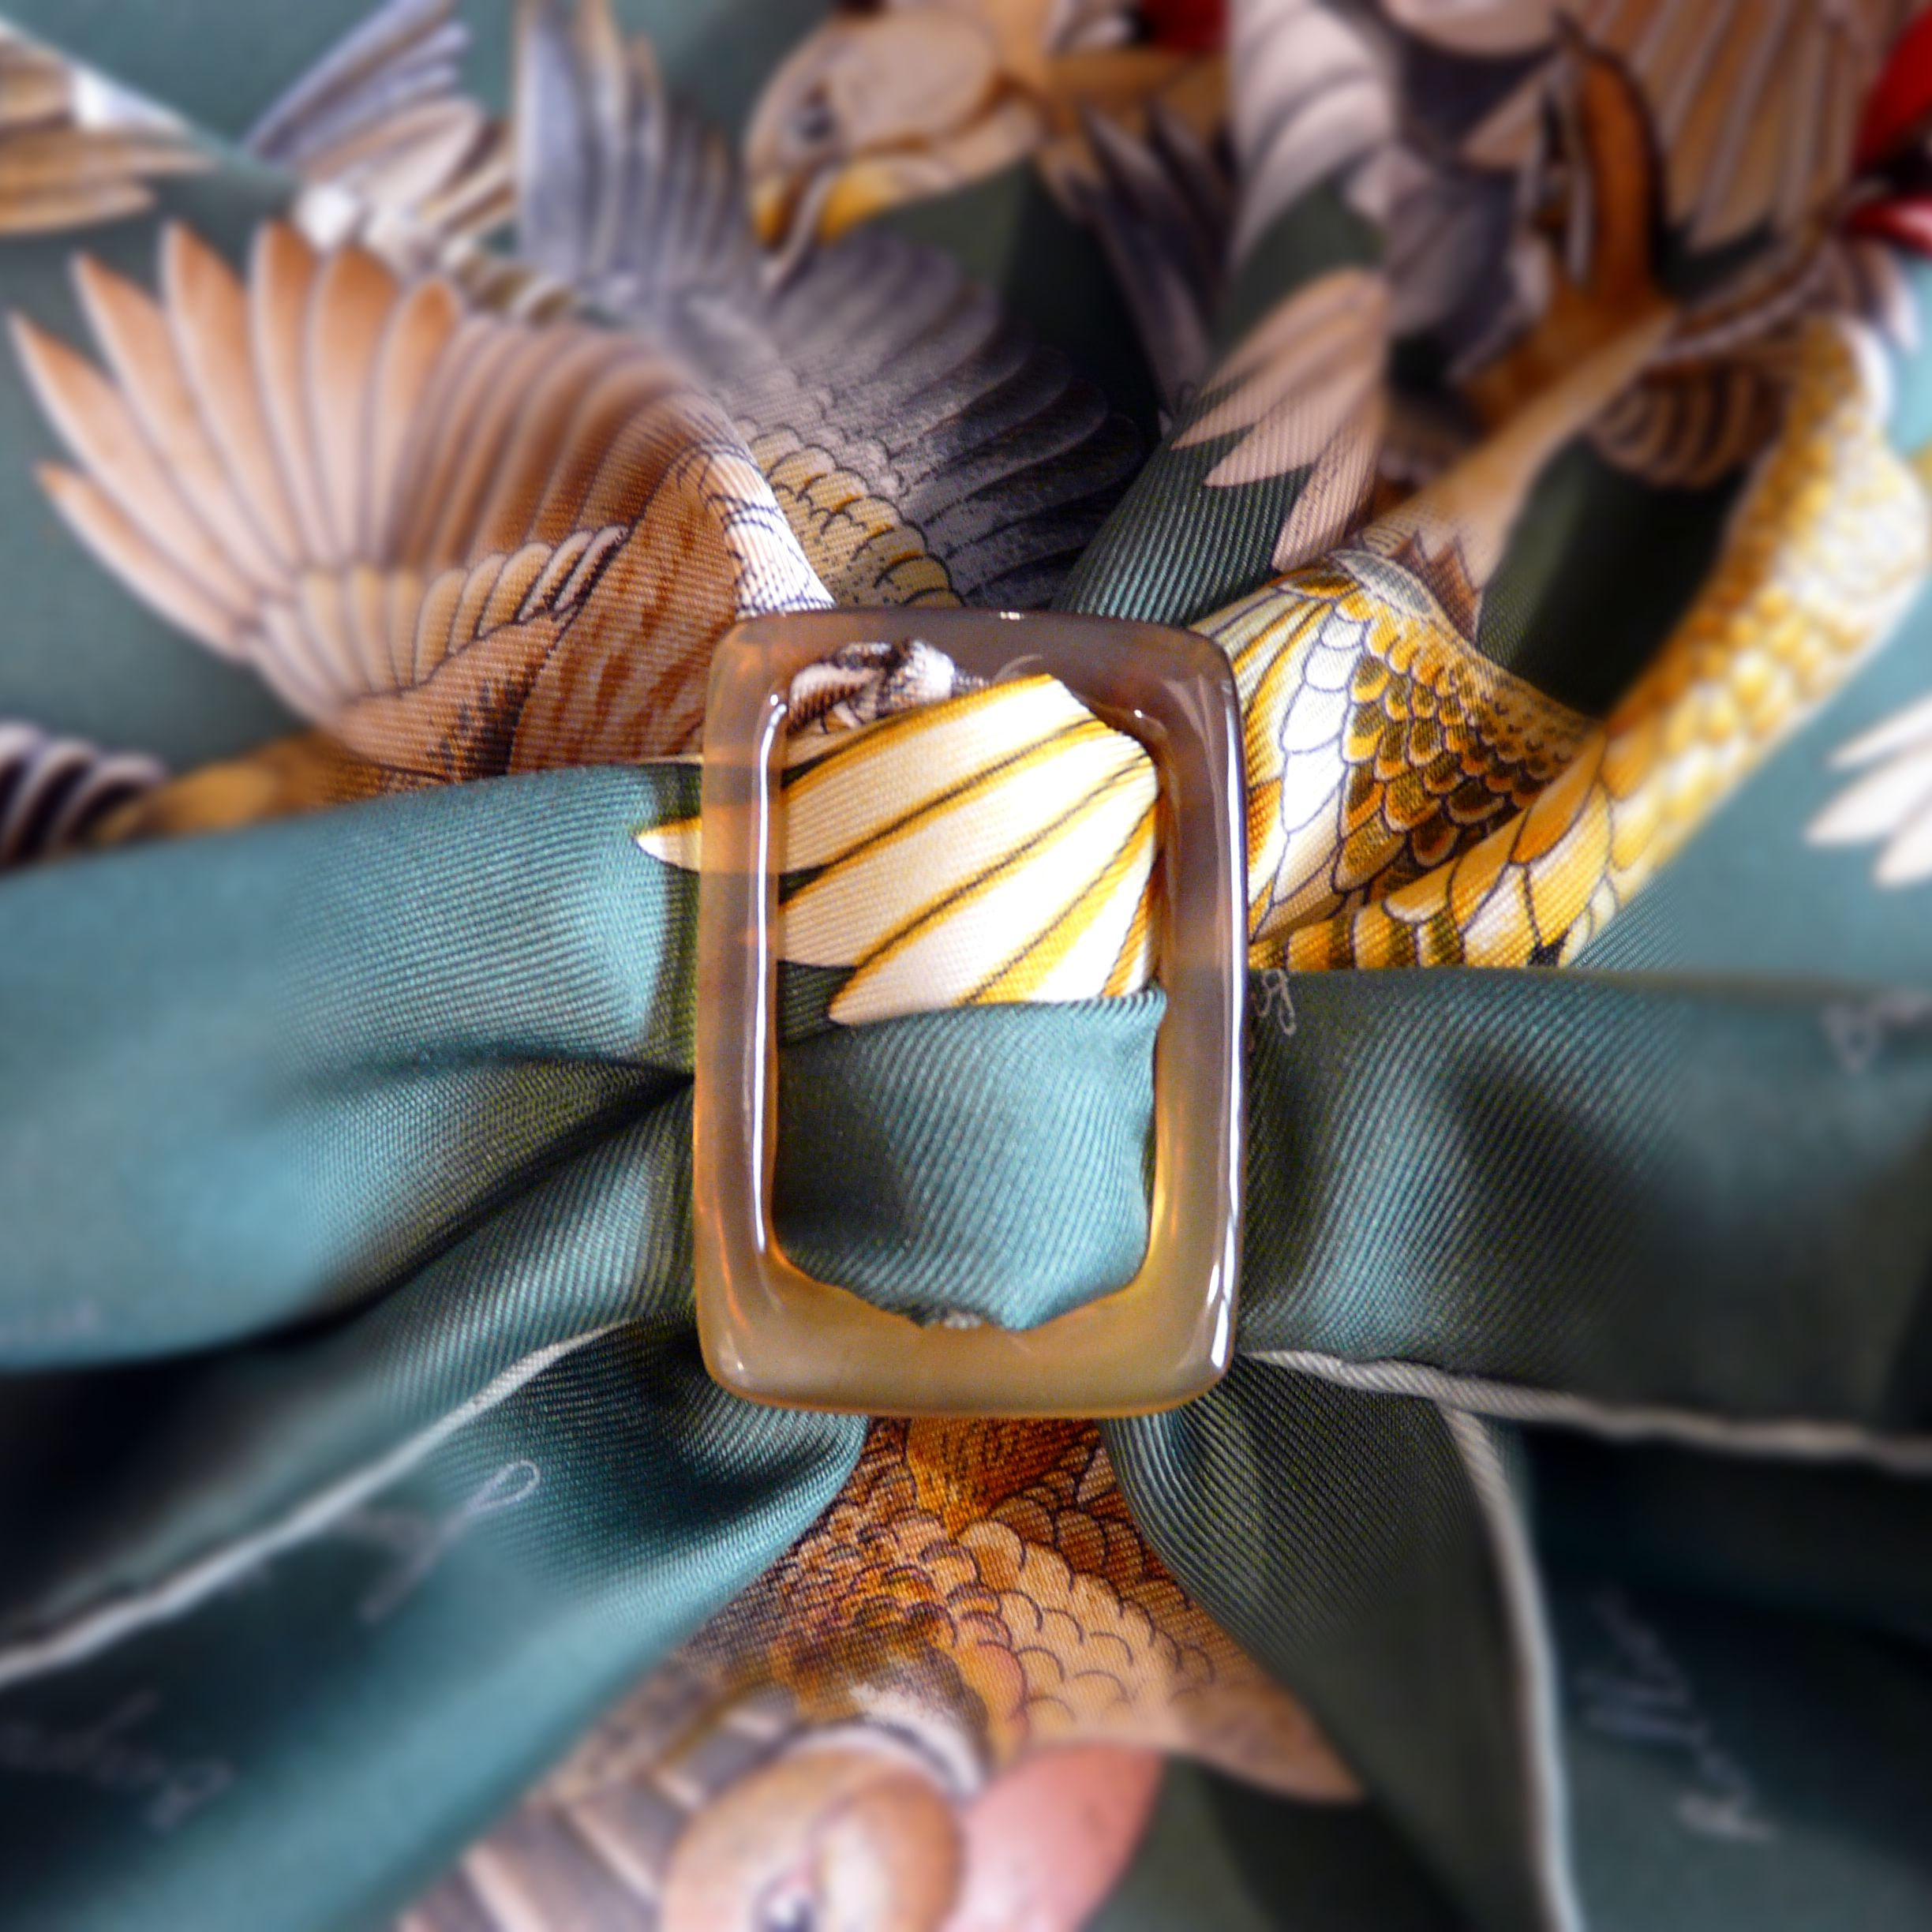 Anneau Ceinture Horn Scarf Ring with HERMES L'Intrus Carre